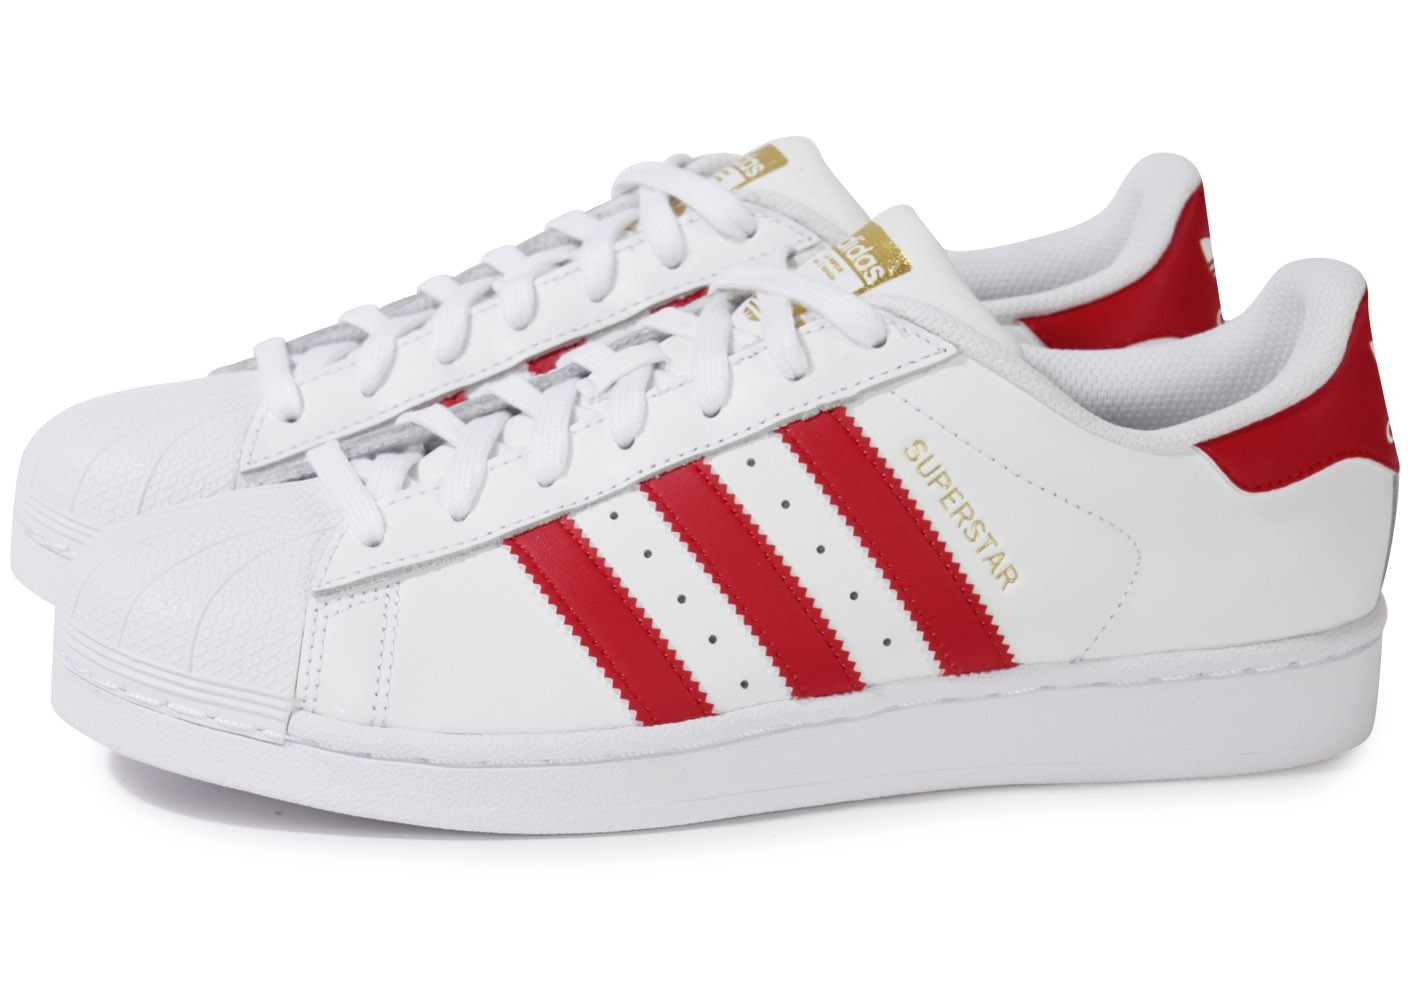 adidas superstar femme blanche et rouge Outlet Vente ...